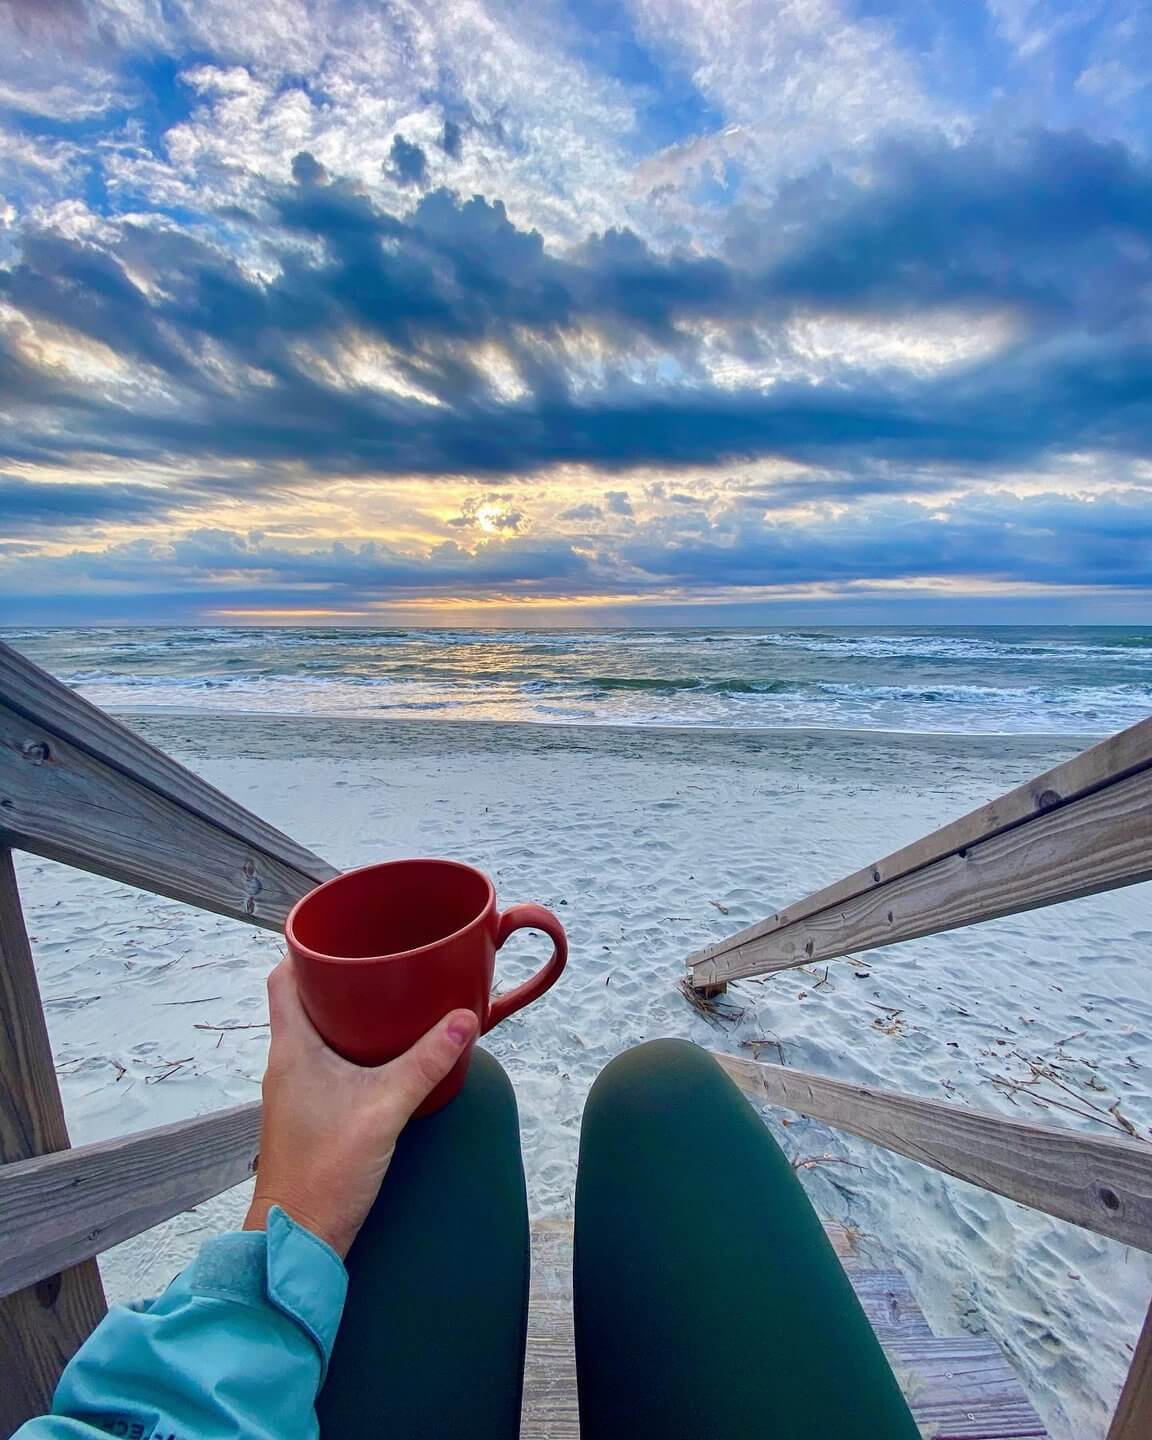 Enjoy a cup of coffee while watching the glorious sunrise over the ocean. (Photo credit: @_lauraet)